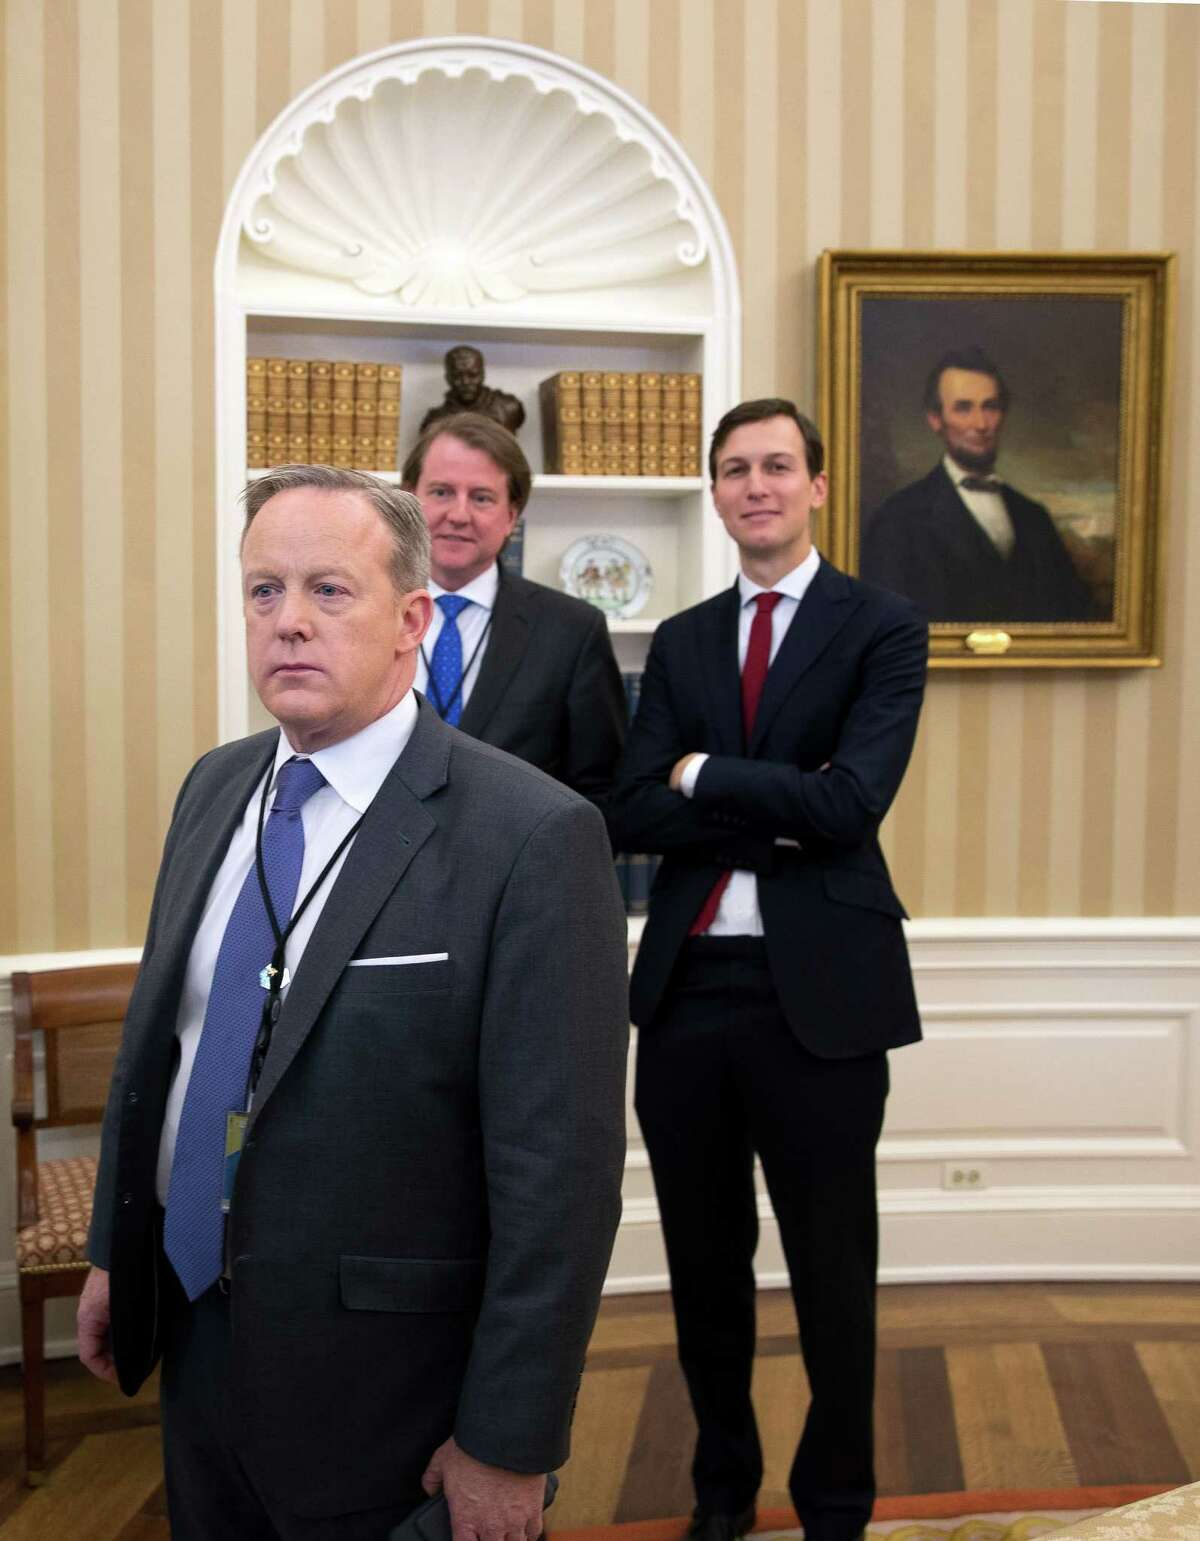 White House Press Secretary Sean Spicer, left, during a singing of an executive action to cut regulations for small businesses with small business leaders in the Oval Office of the White House in Washington, Jan. 30, 2017. (Stephen Crowley/The New York Times)